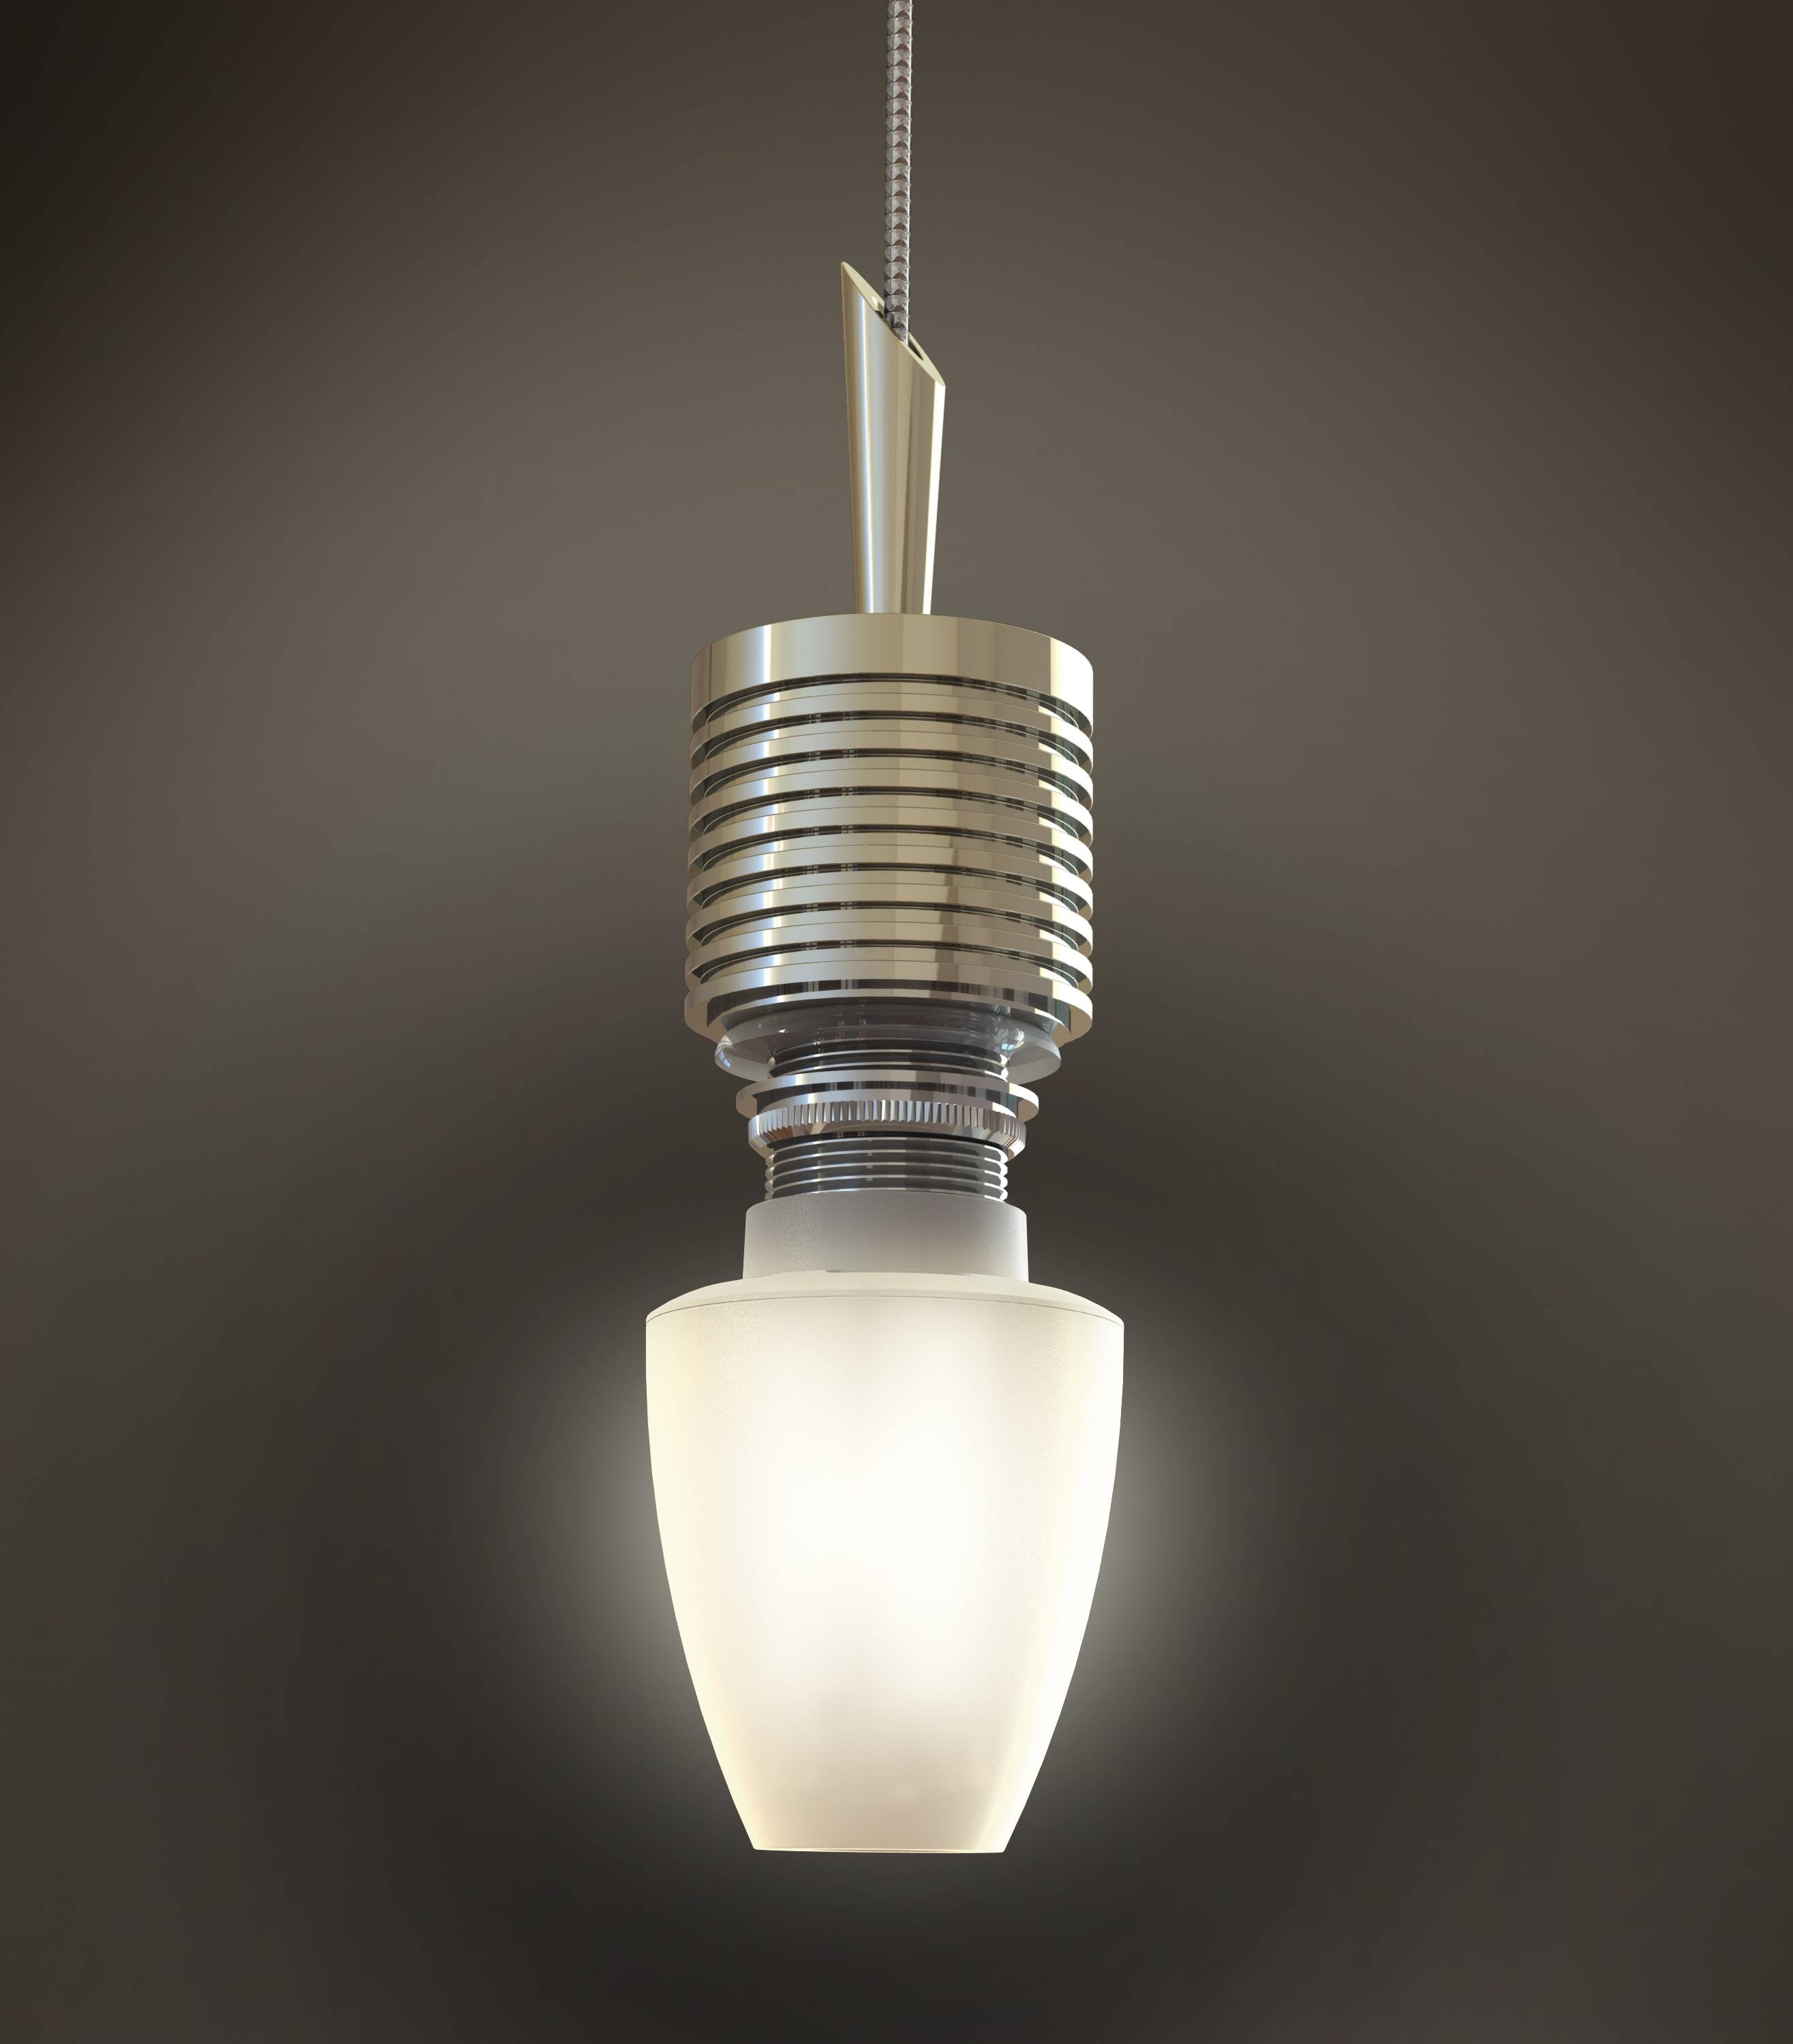 Good Commercial Pendant Light Fixtures 18 With Additional Light throughout Commercial Hanging Lights Fixtures (Image 9 of 15)